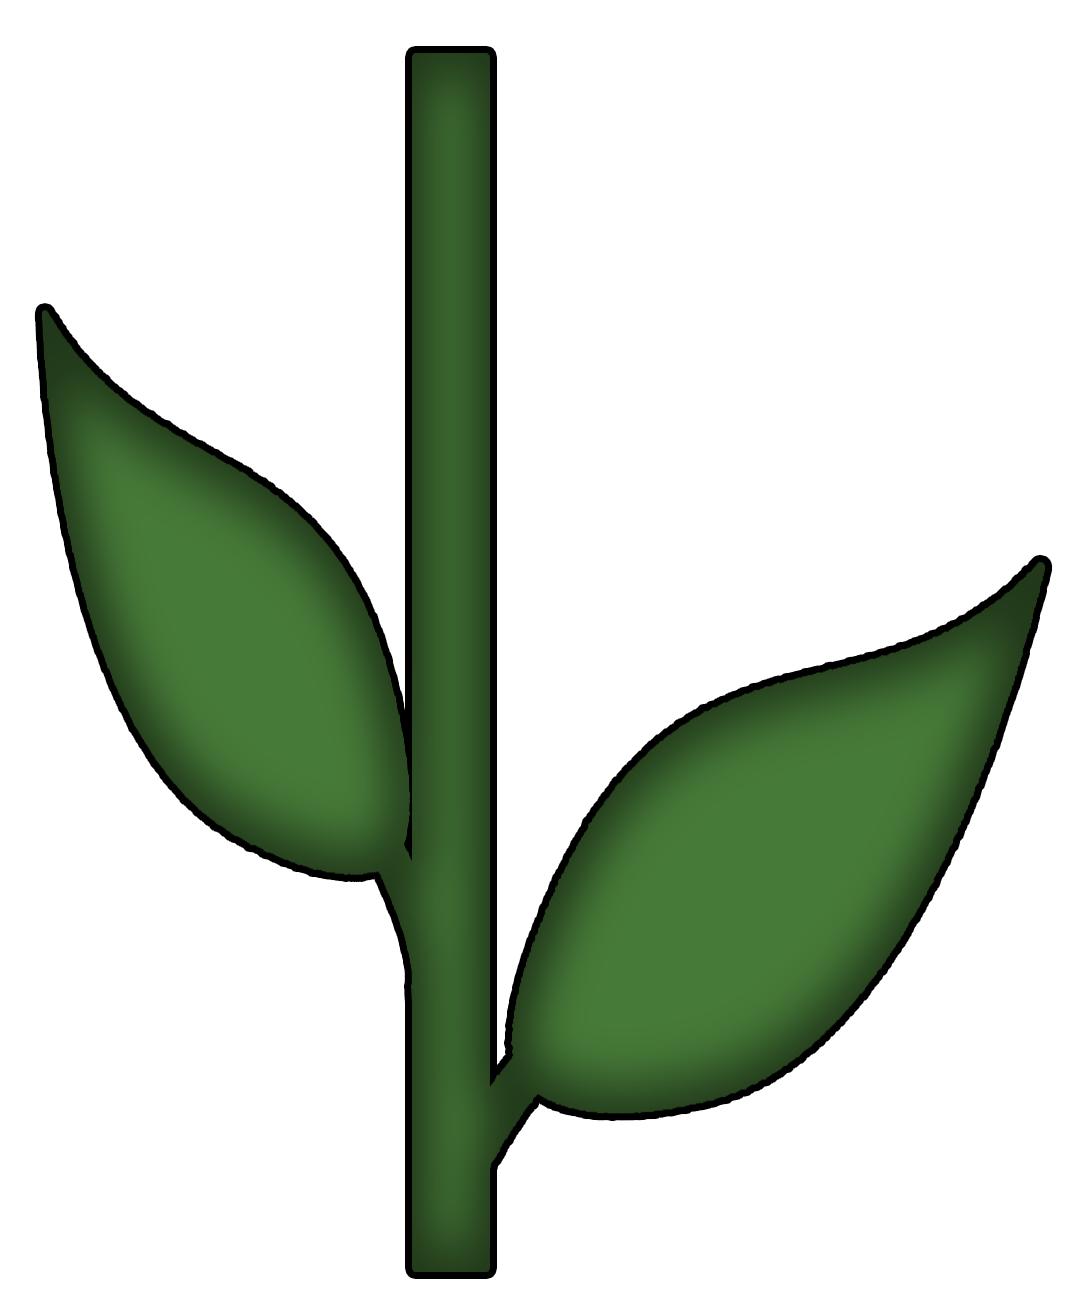 Flower clipart stems. Images of stem template